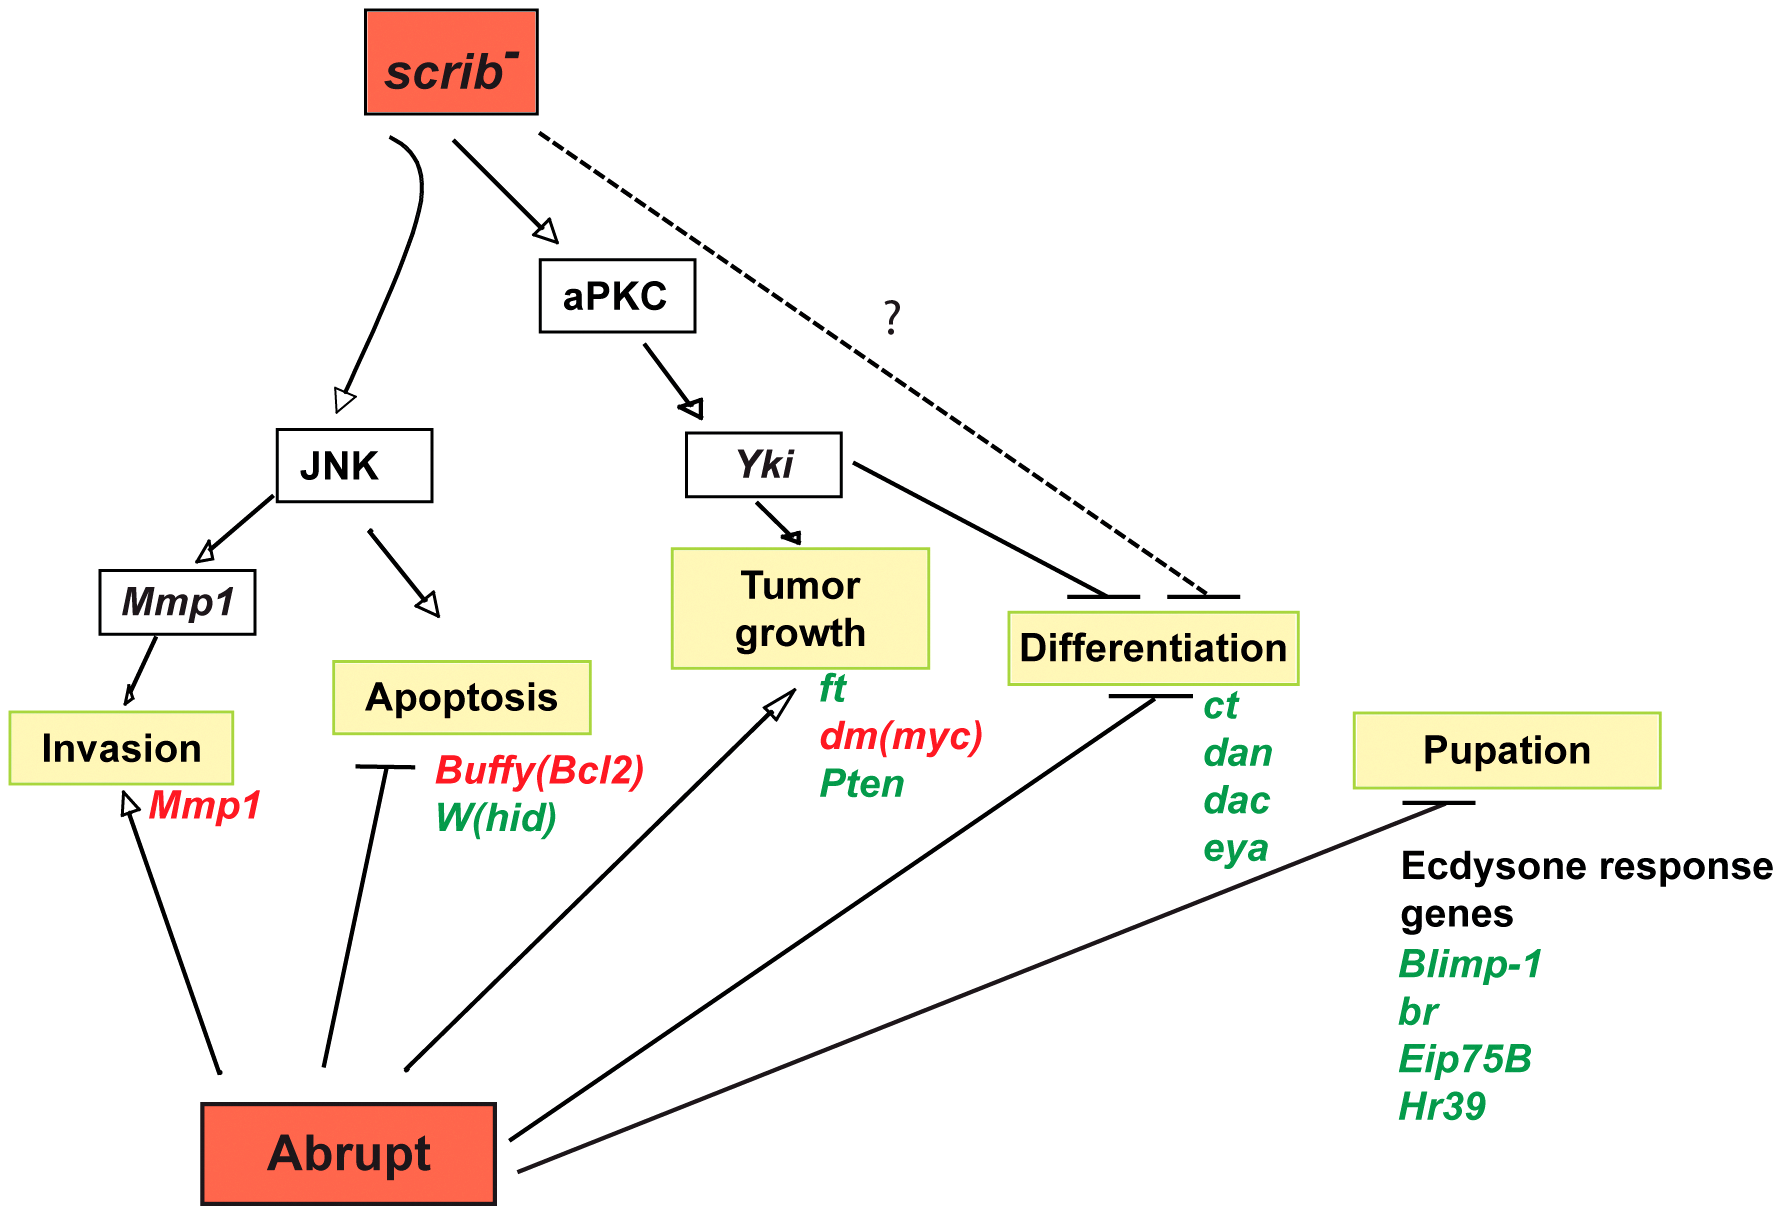 Model illustrating the pathways involved in <i>scrib</i><sup>−</sup>+<i>ab</i> cooperative tumour overgrowth.